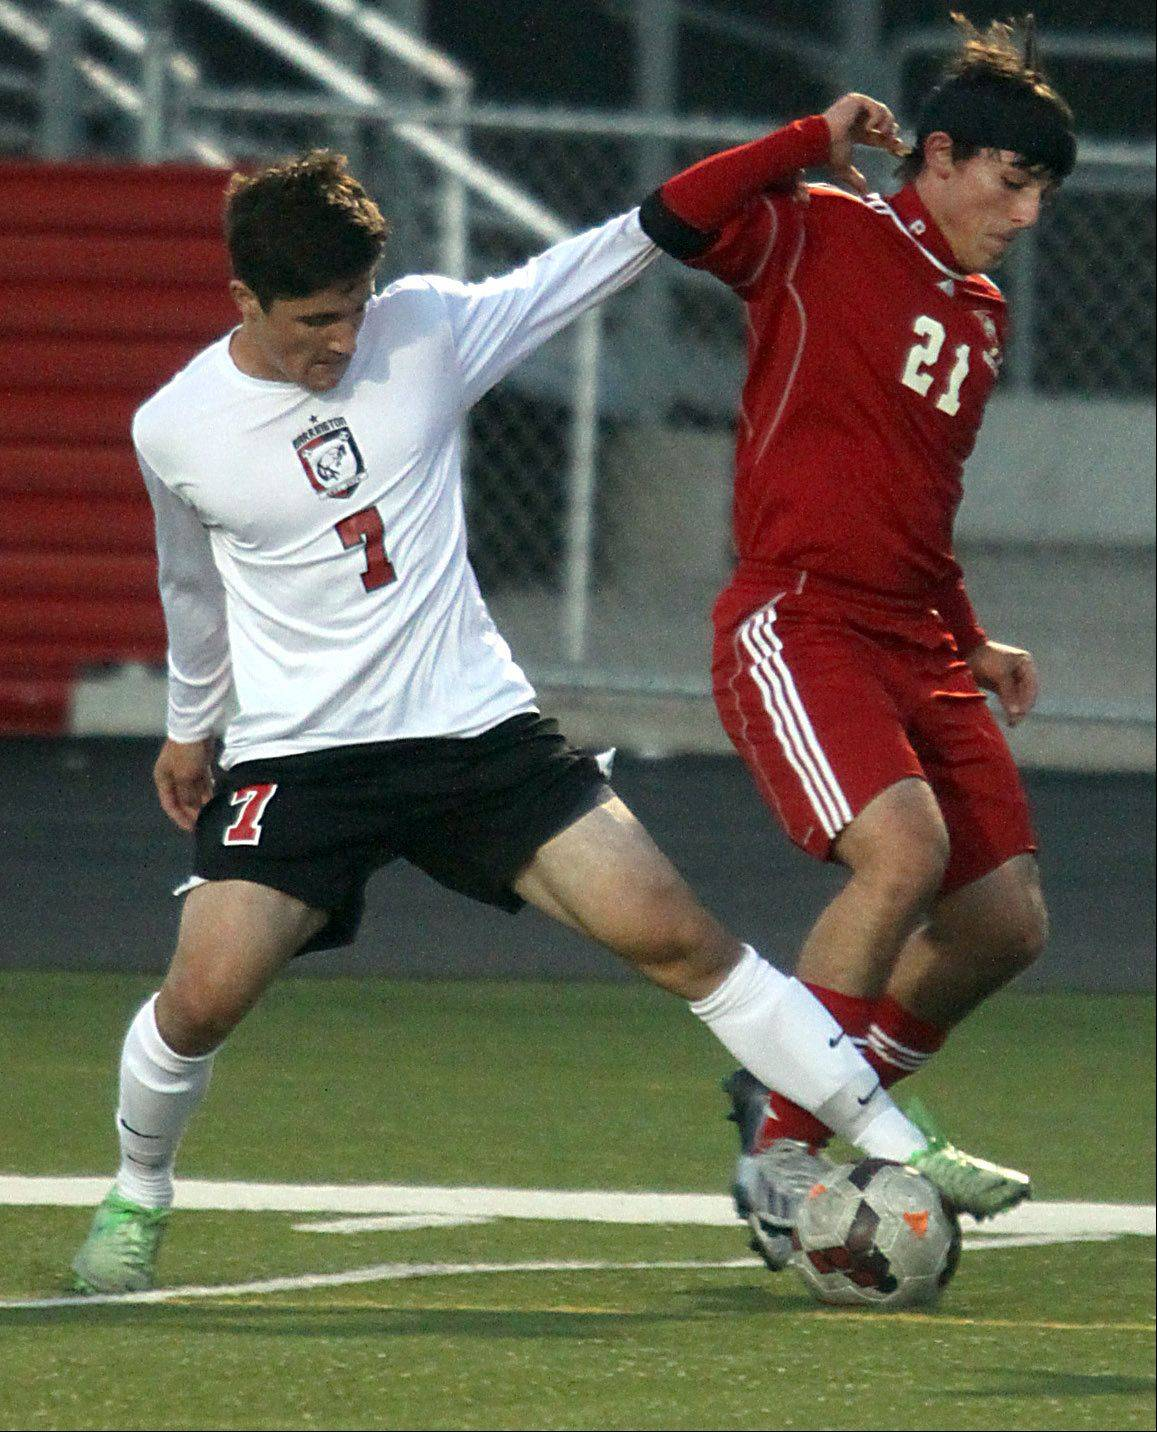 Barrington's Connor Hennelly, left, and Palatine's Brennan Harding battle for possession at Barrington on Monday night.